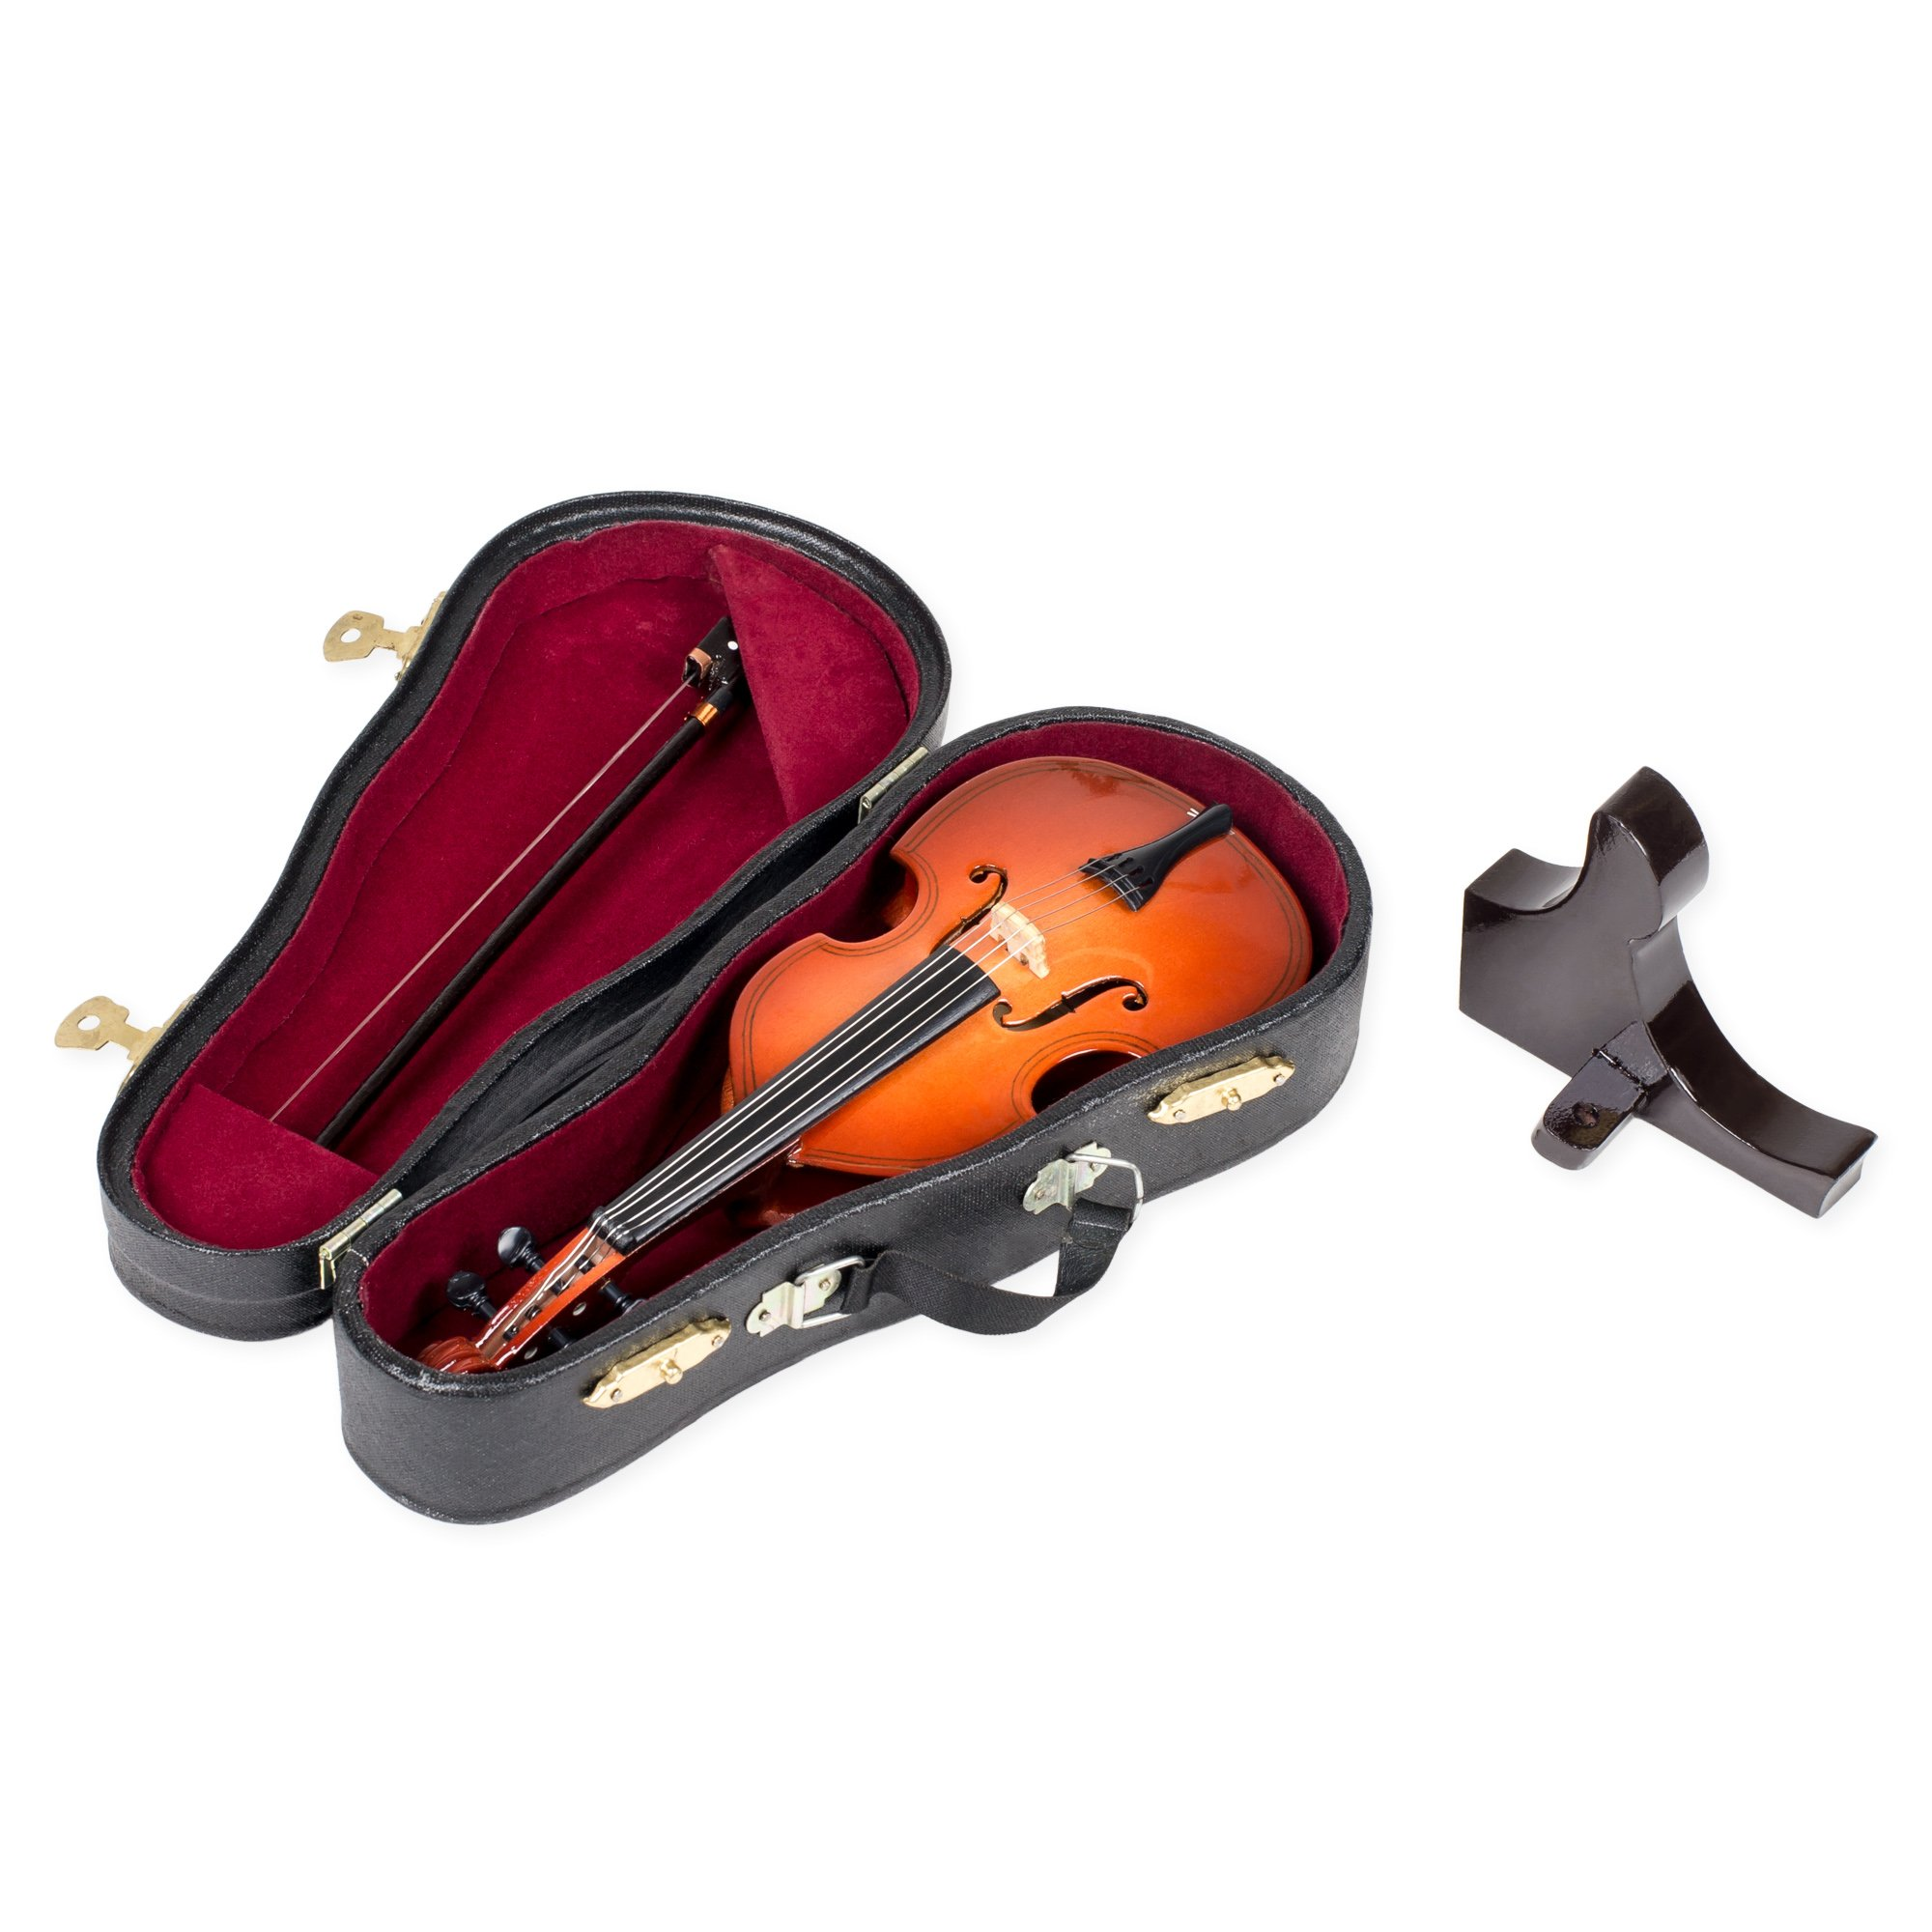 Upright Bass With Stand And Case Mahogany Tone 6 x 7.5 Wood Music Box Figurine